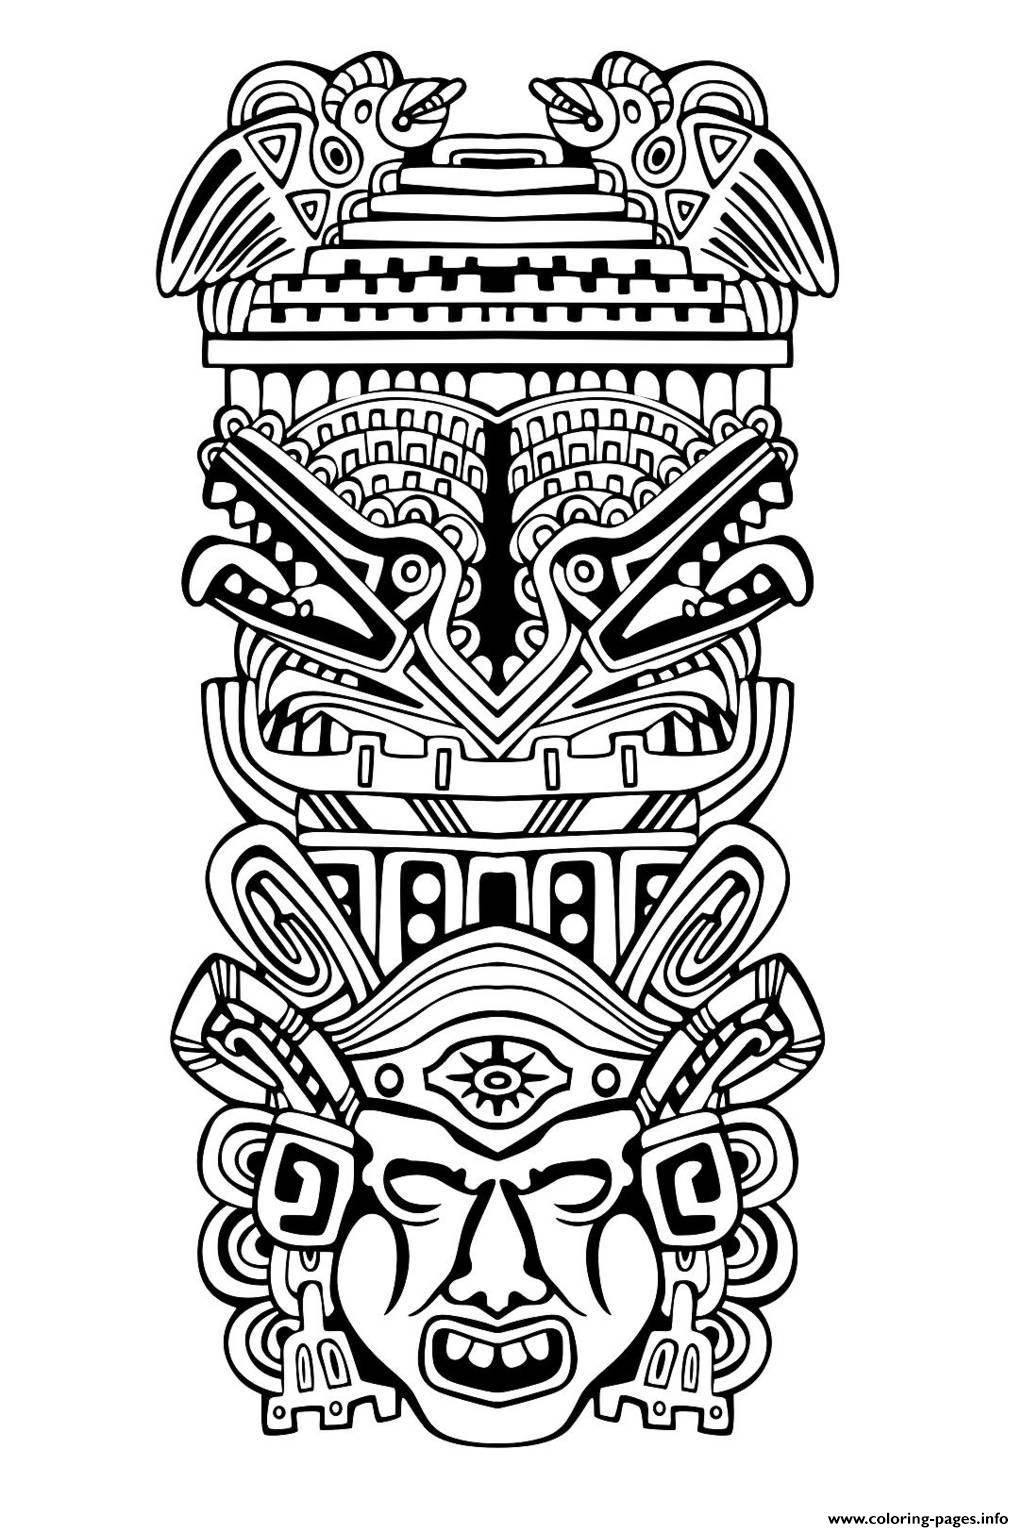 in addition 919de5ae8fb191bdb49d8531092b982a as well 1451454245adult mask inspiration inca mayan aztec 2 as well 123ad1bca0ad7ac50852d8684fbbfc33 additionally 1451454259adult totem inspiration inca mayan aztec 4 additionally 1451454225adult totem inspiration inca mayan aztec 2 moreover il 570xN 997795669 keg1 also  together with f749892165c89798783736024defbe93 further 1451454243adult mask inspiration inca mayan aztec together with . on aztec adult coloring pages printable